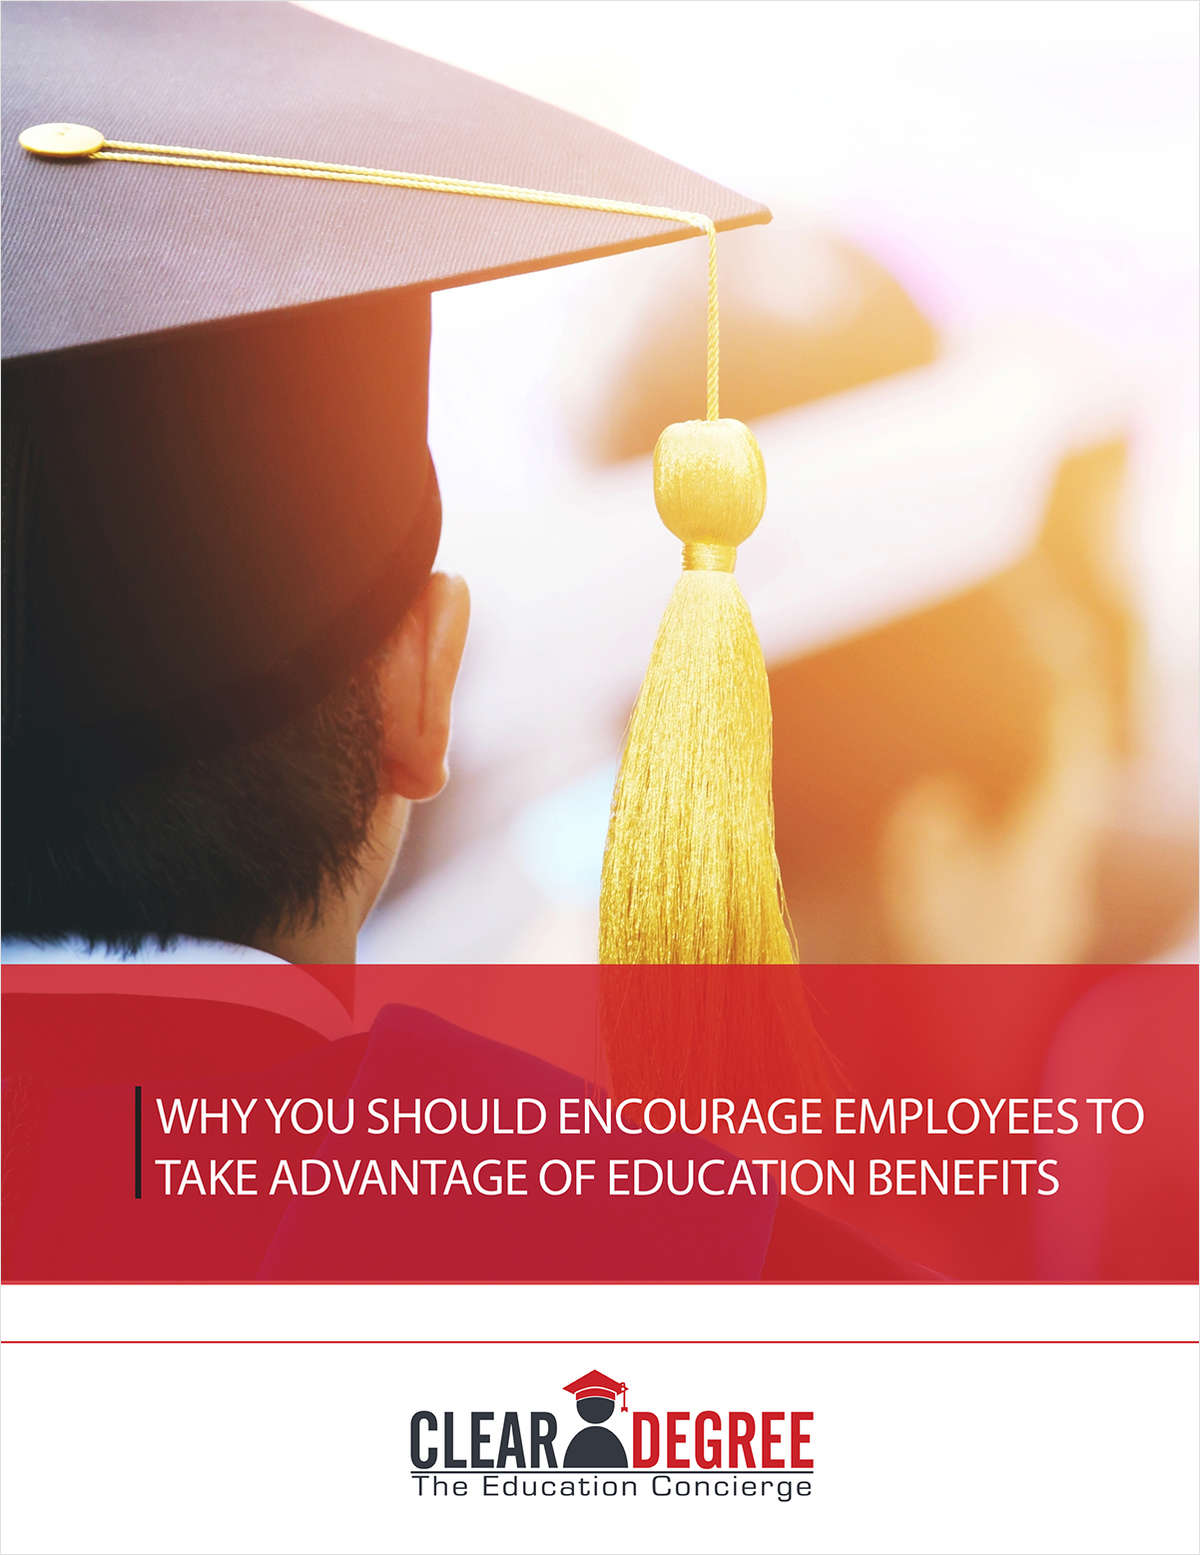 Why You Should Encourage Employees to Take Advantage of Education Benefits